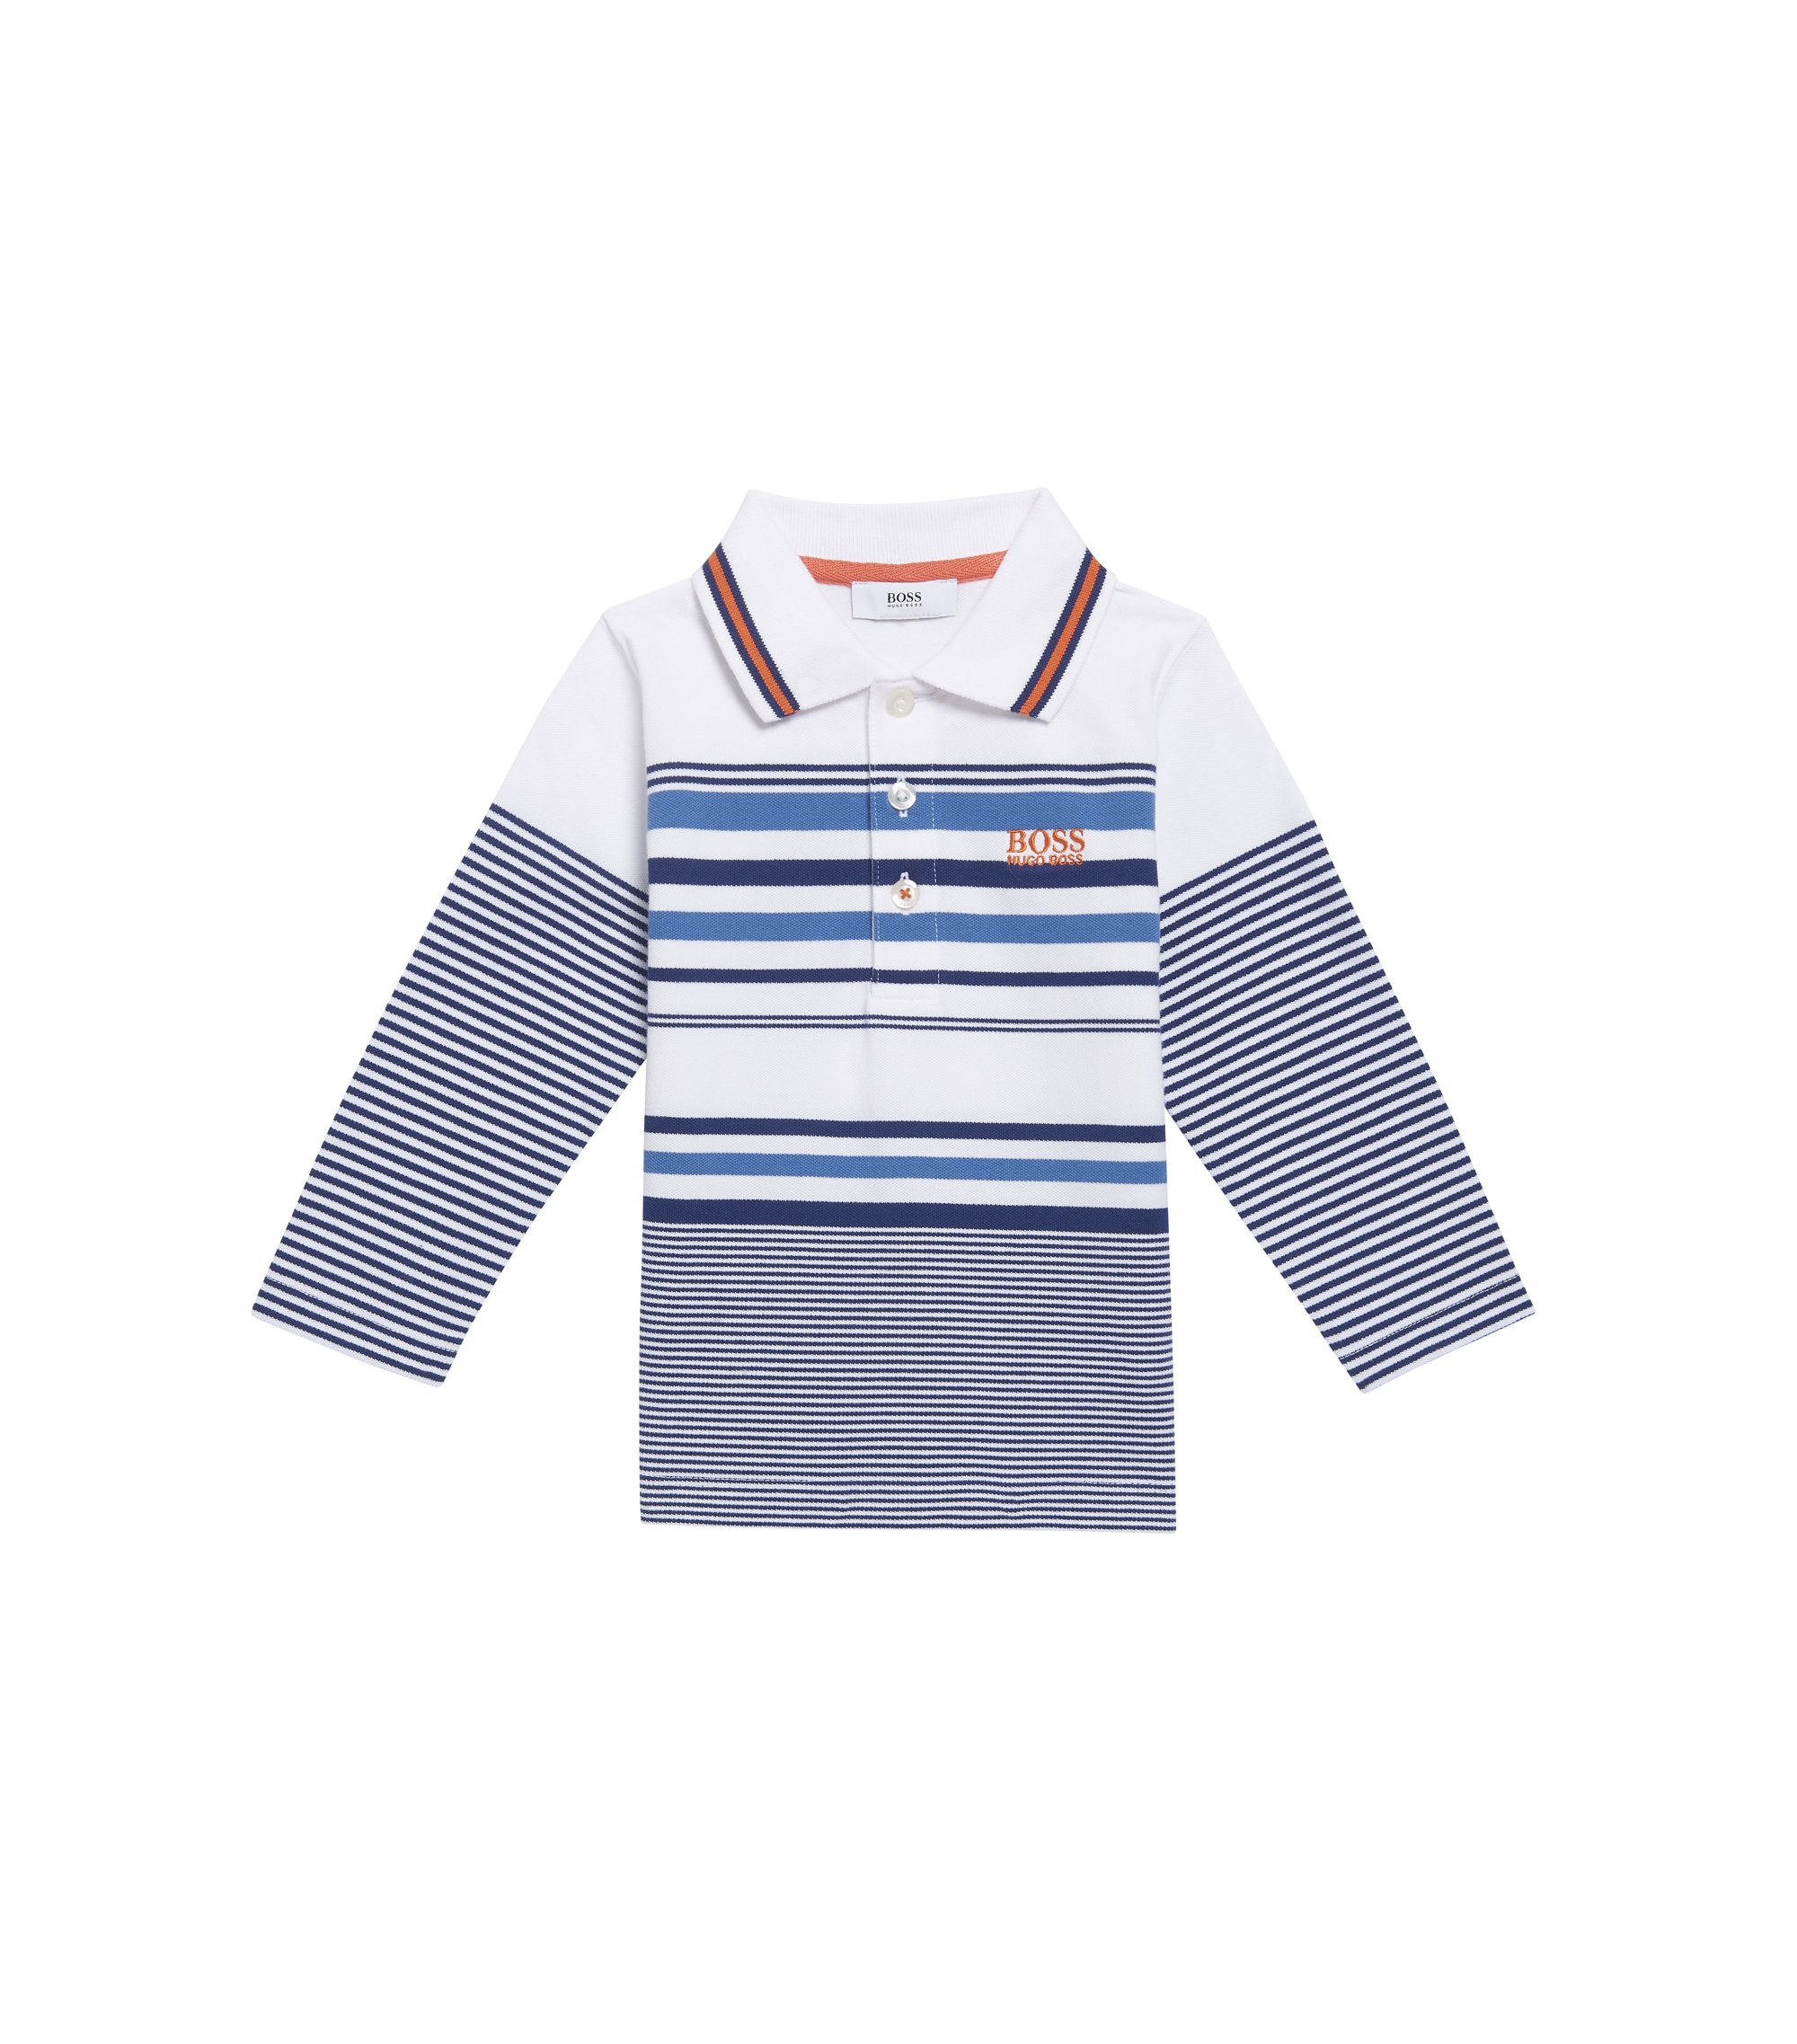 'J05498' | Toddler Stretch Cotton Blend Polo Shirt, Dark Blue